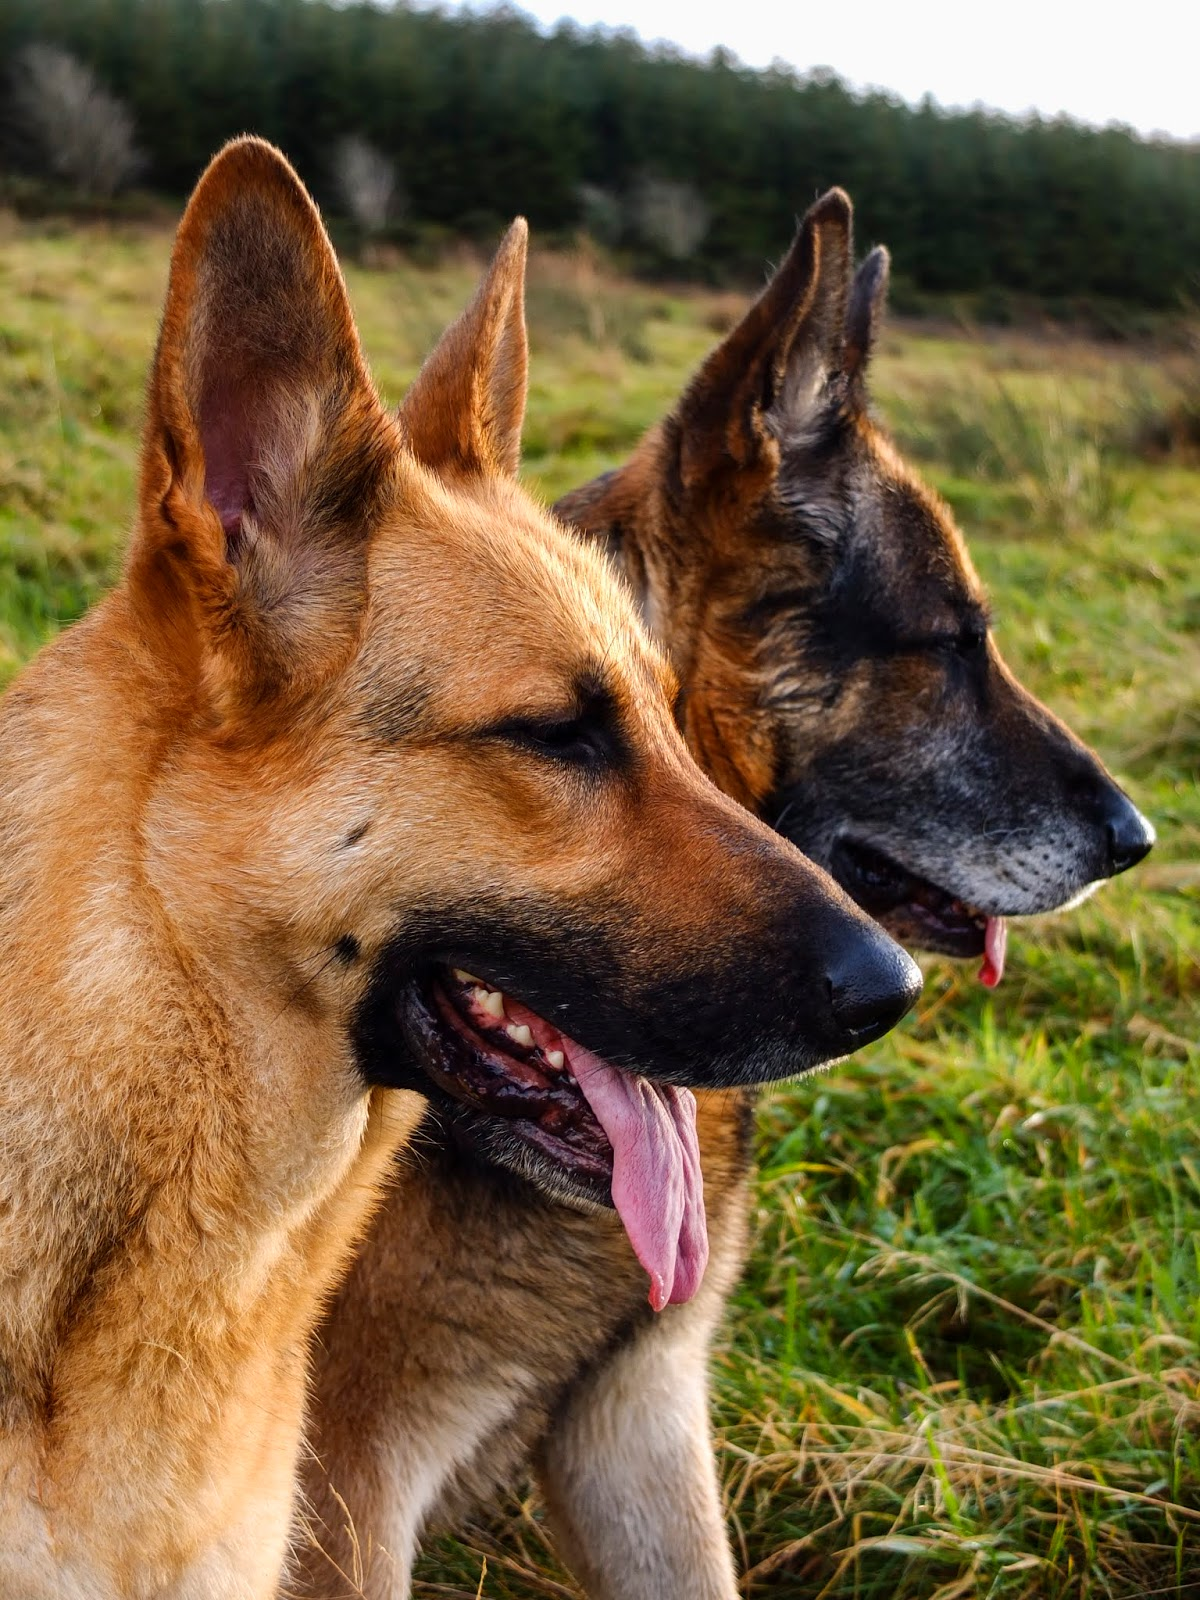 Profile of two German Shepherds Nala and Steve with their eyes closed and panting sitting on a mountainside.